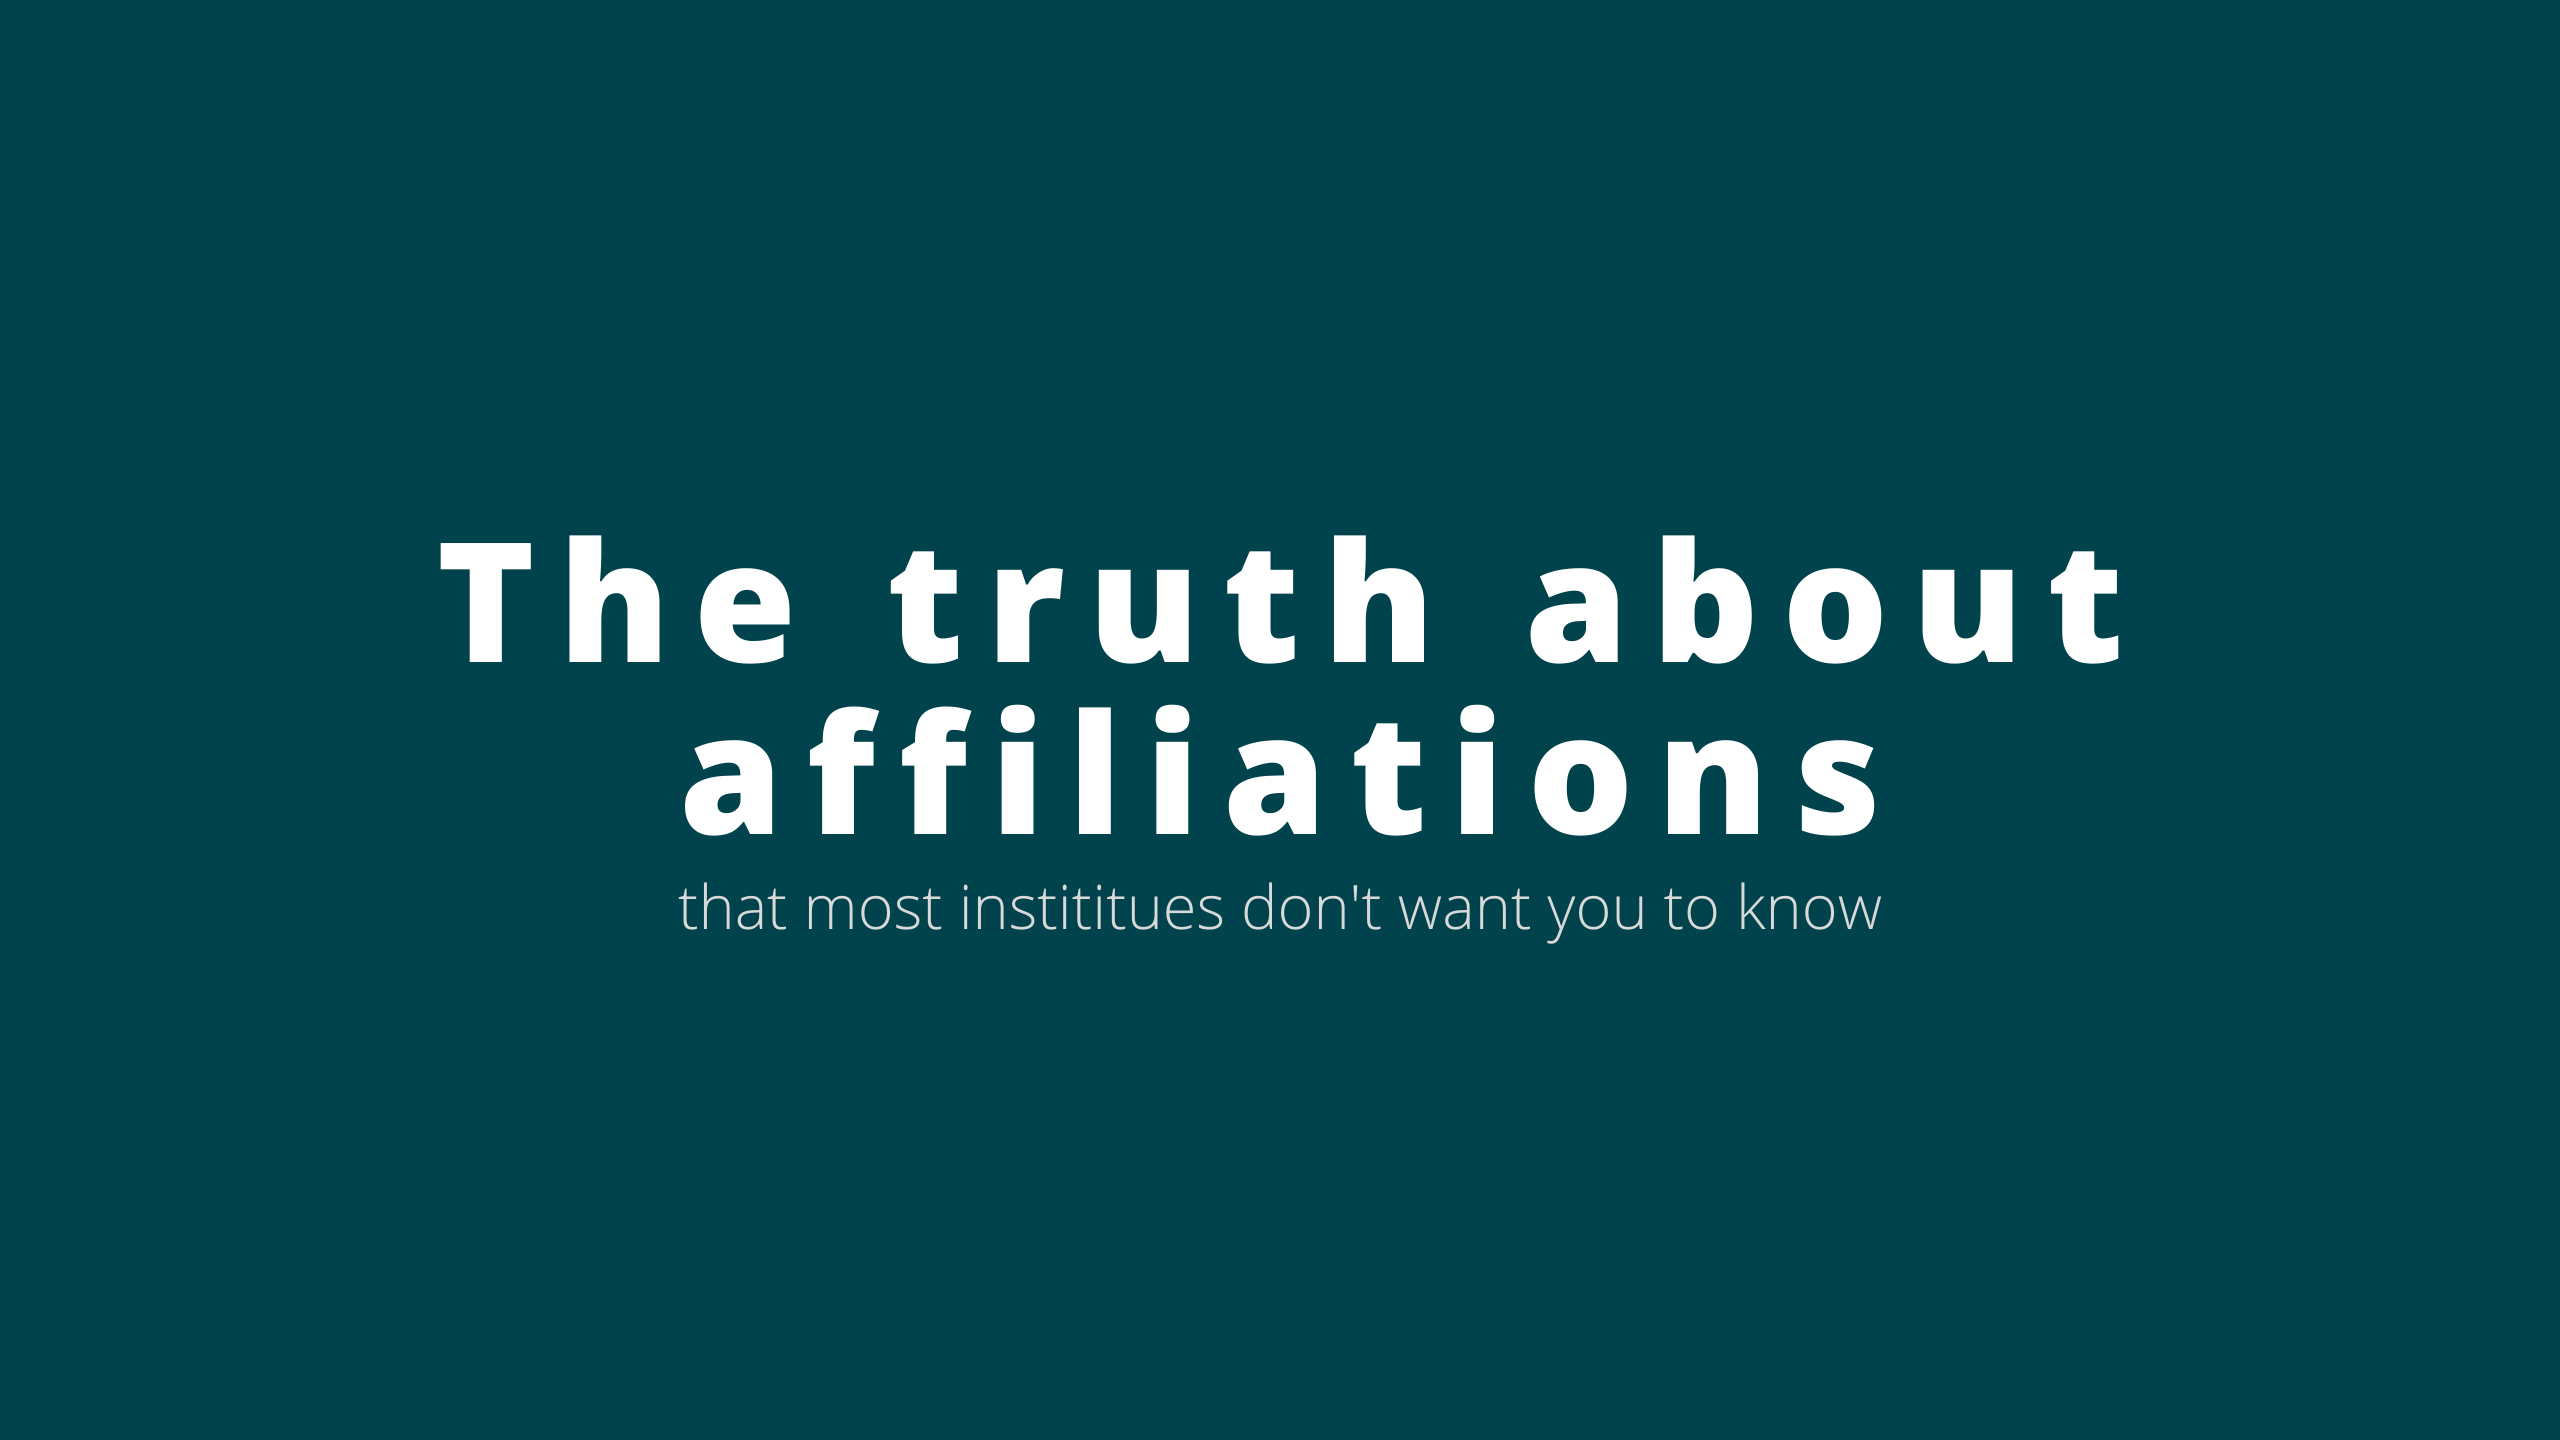 Hypnotheray NLP CBT Course Affiliation Truth - Cognitive Hypnotic Coaching Diploma